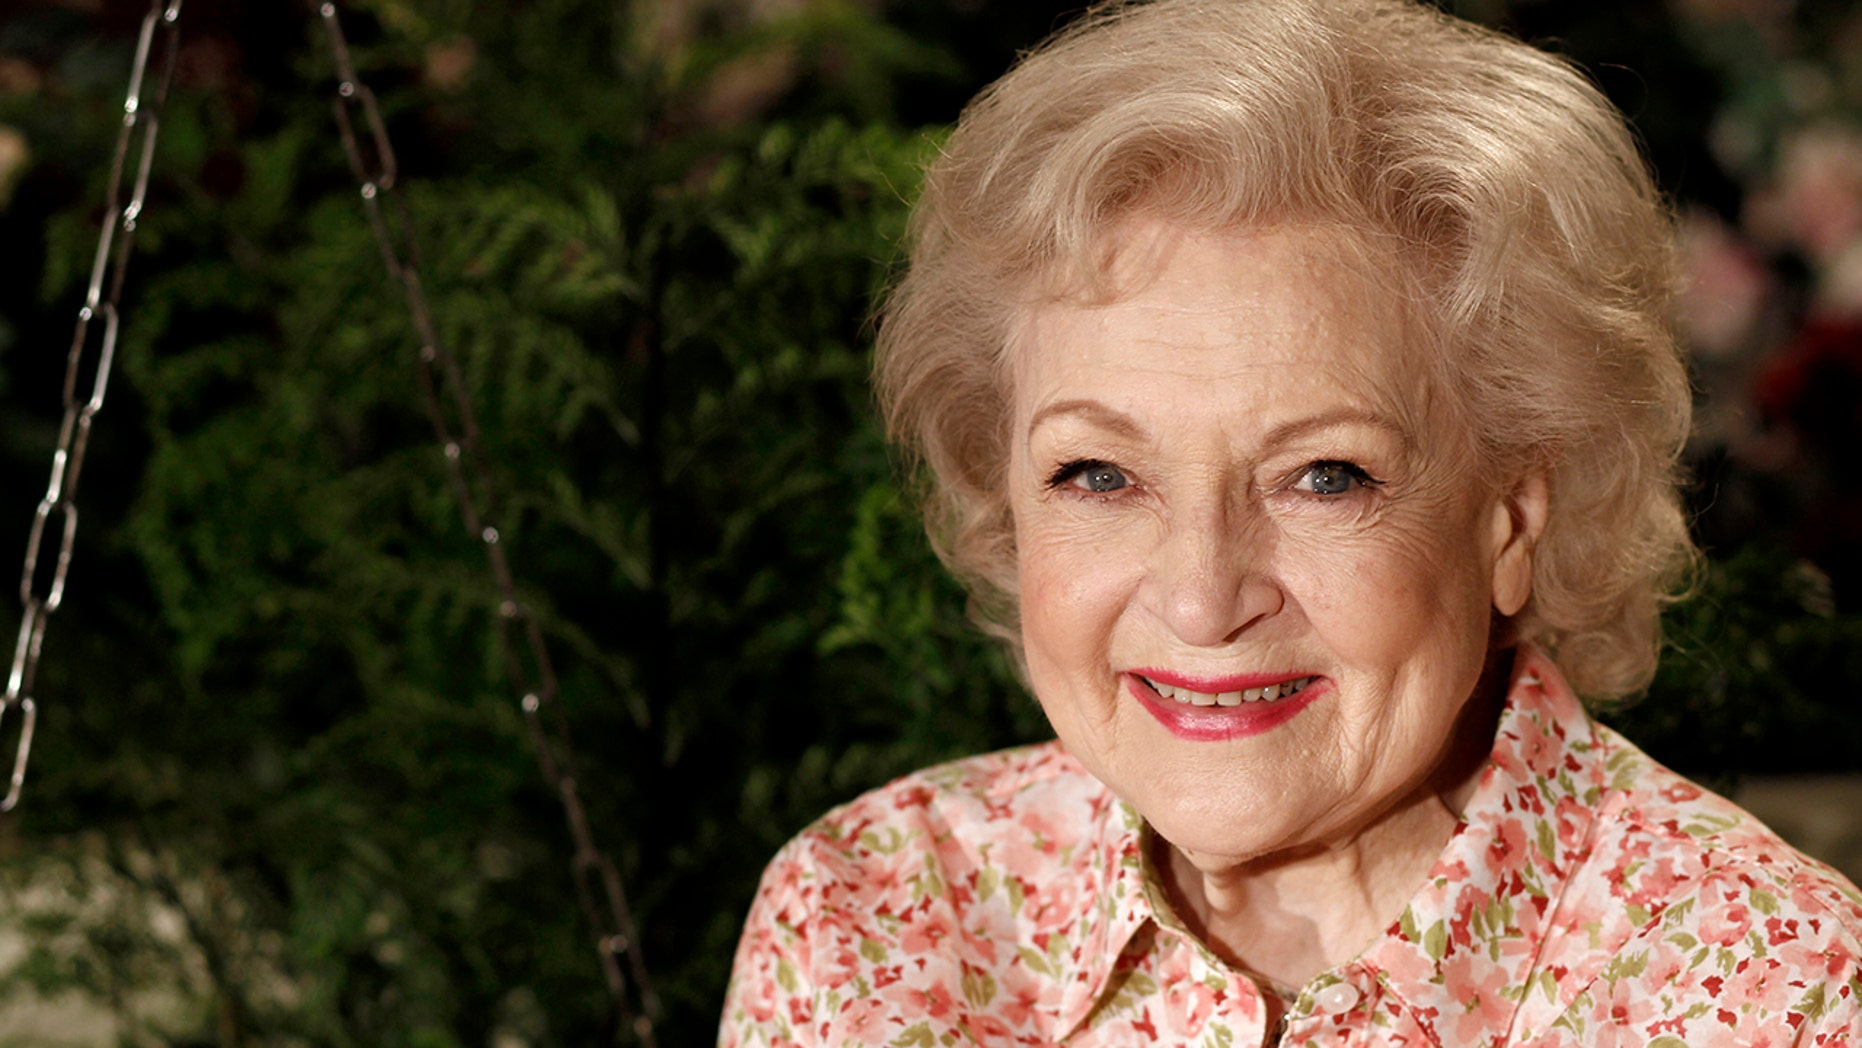 Betty White turns 99, reveals birthday wish and thoughts on her many fans after long career